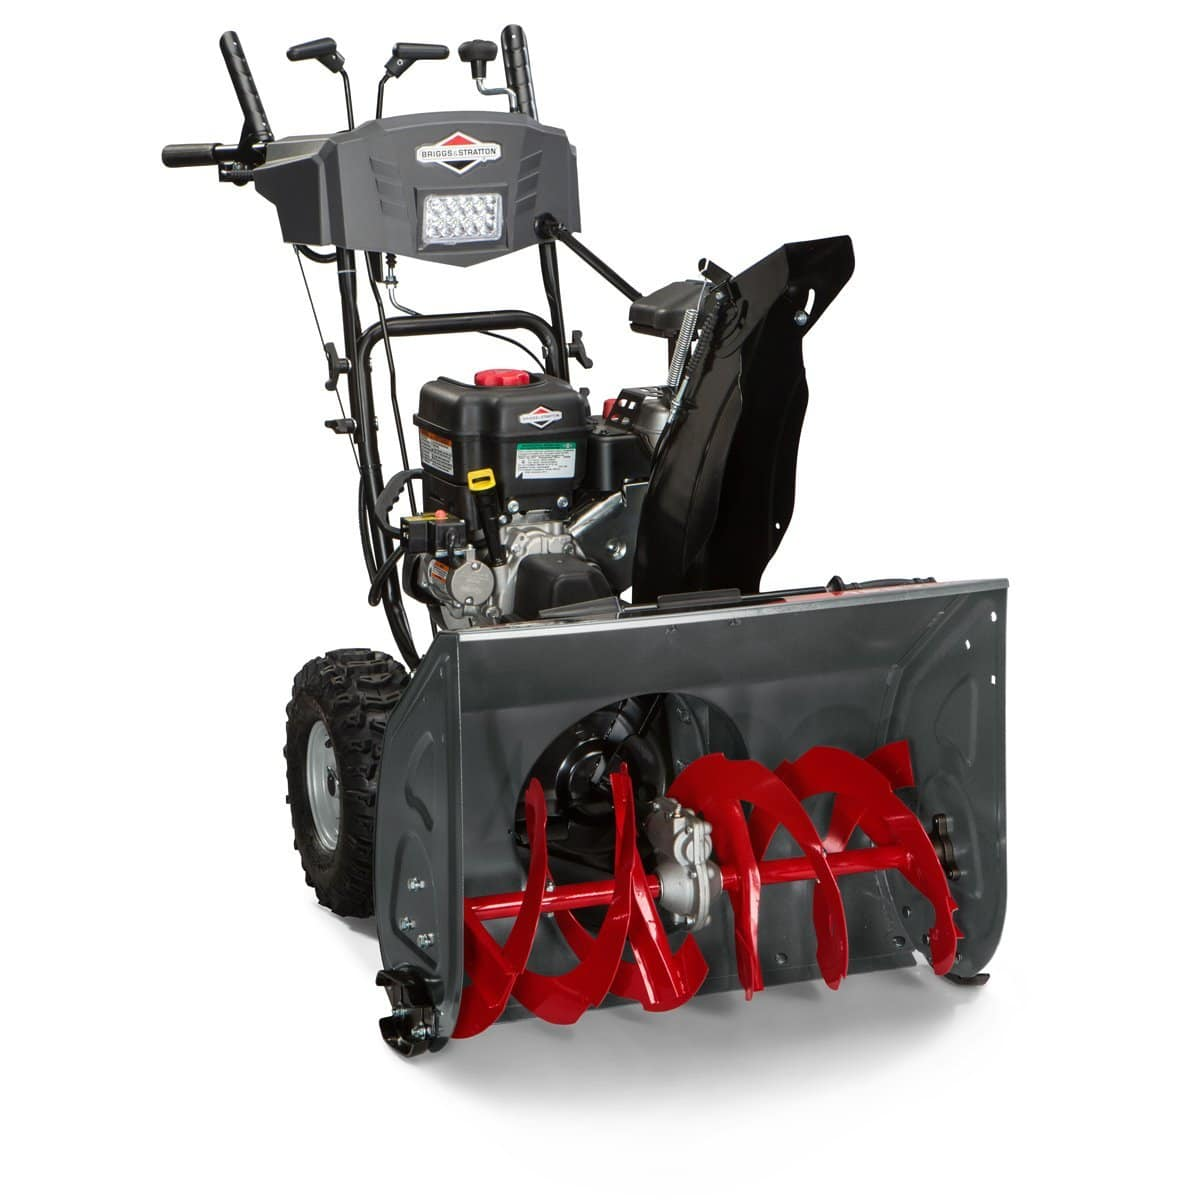 Two Stage Blower : New best stage snow blower reviews top picks for